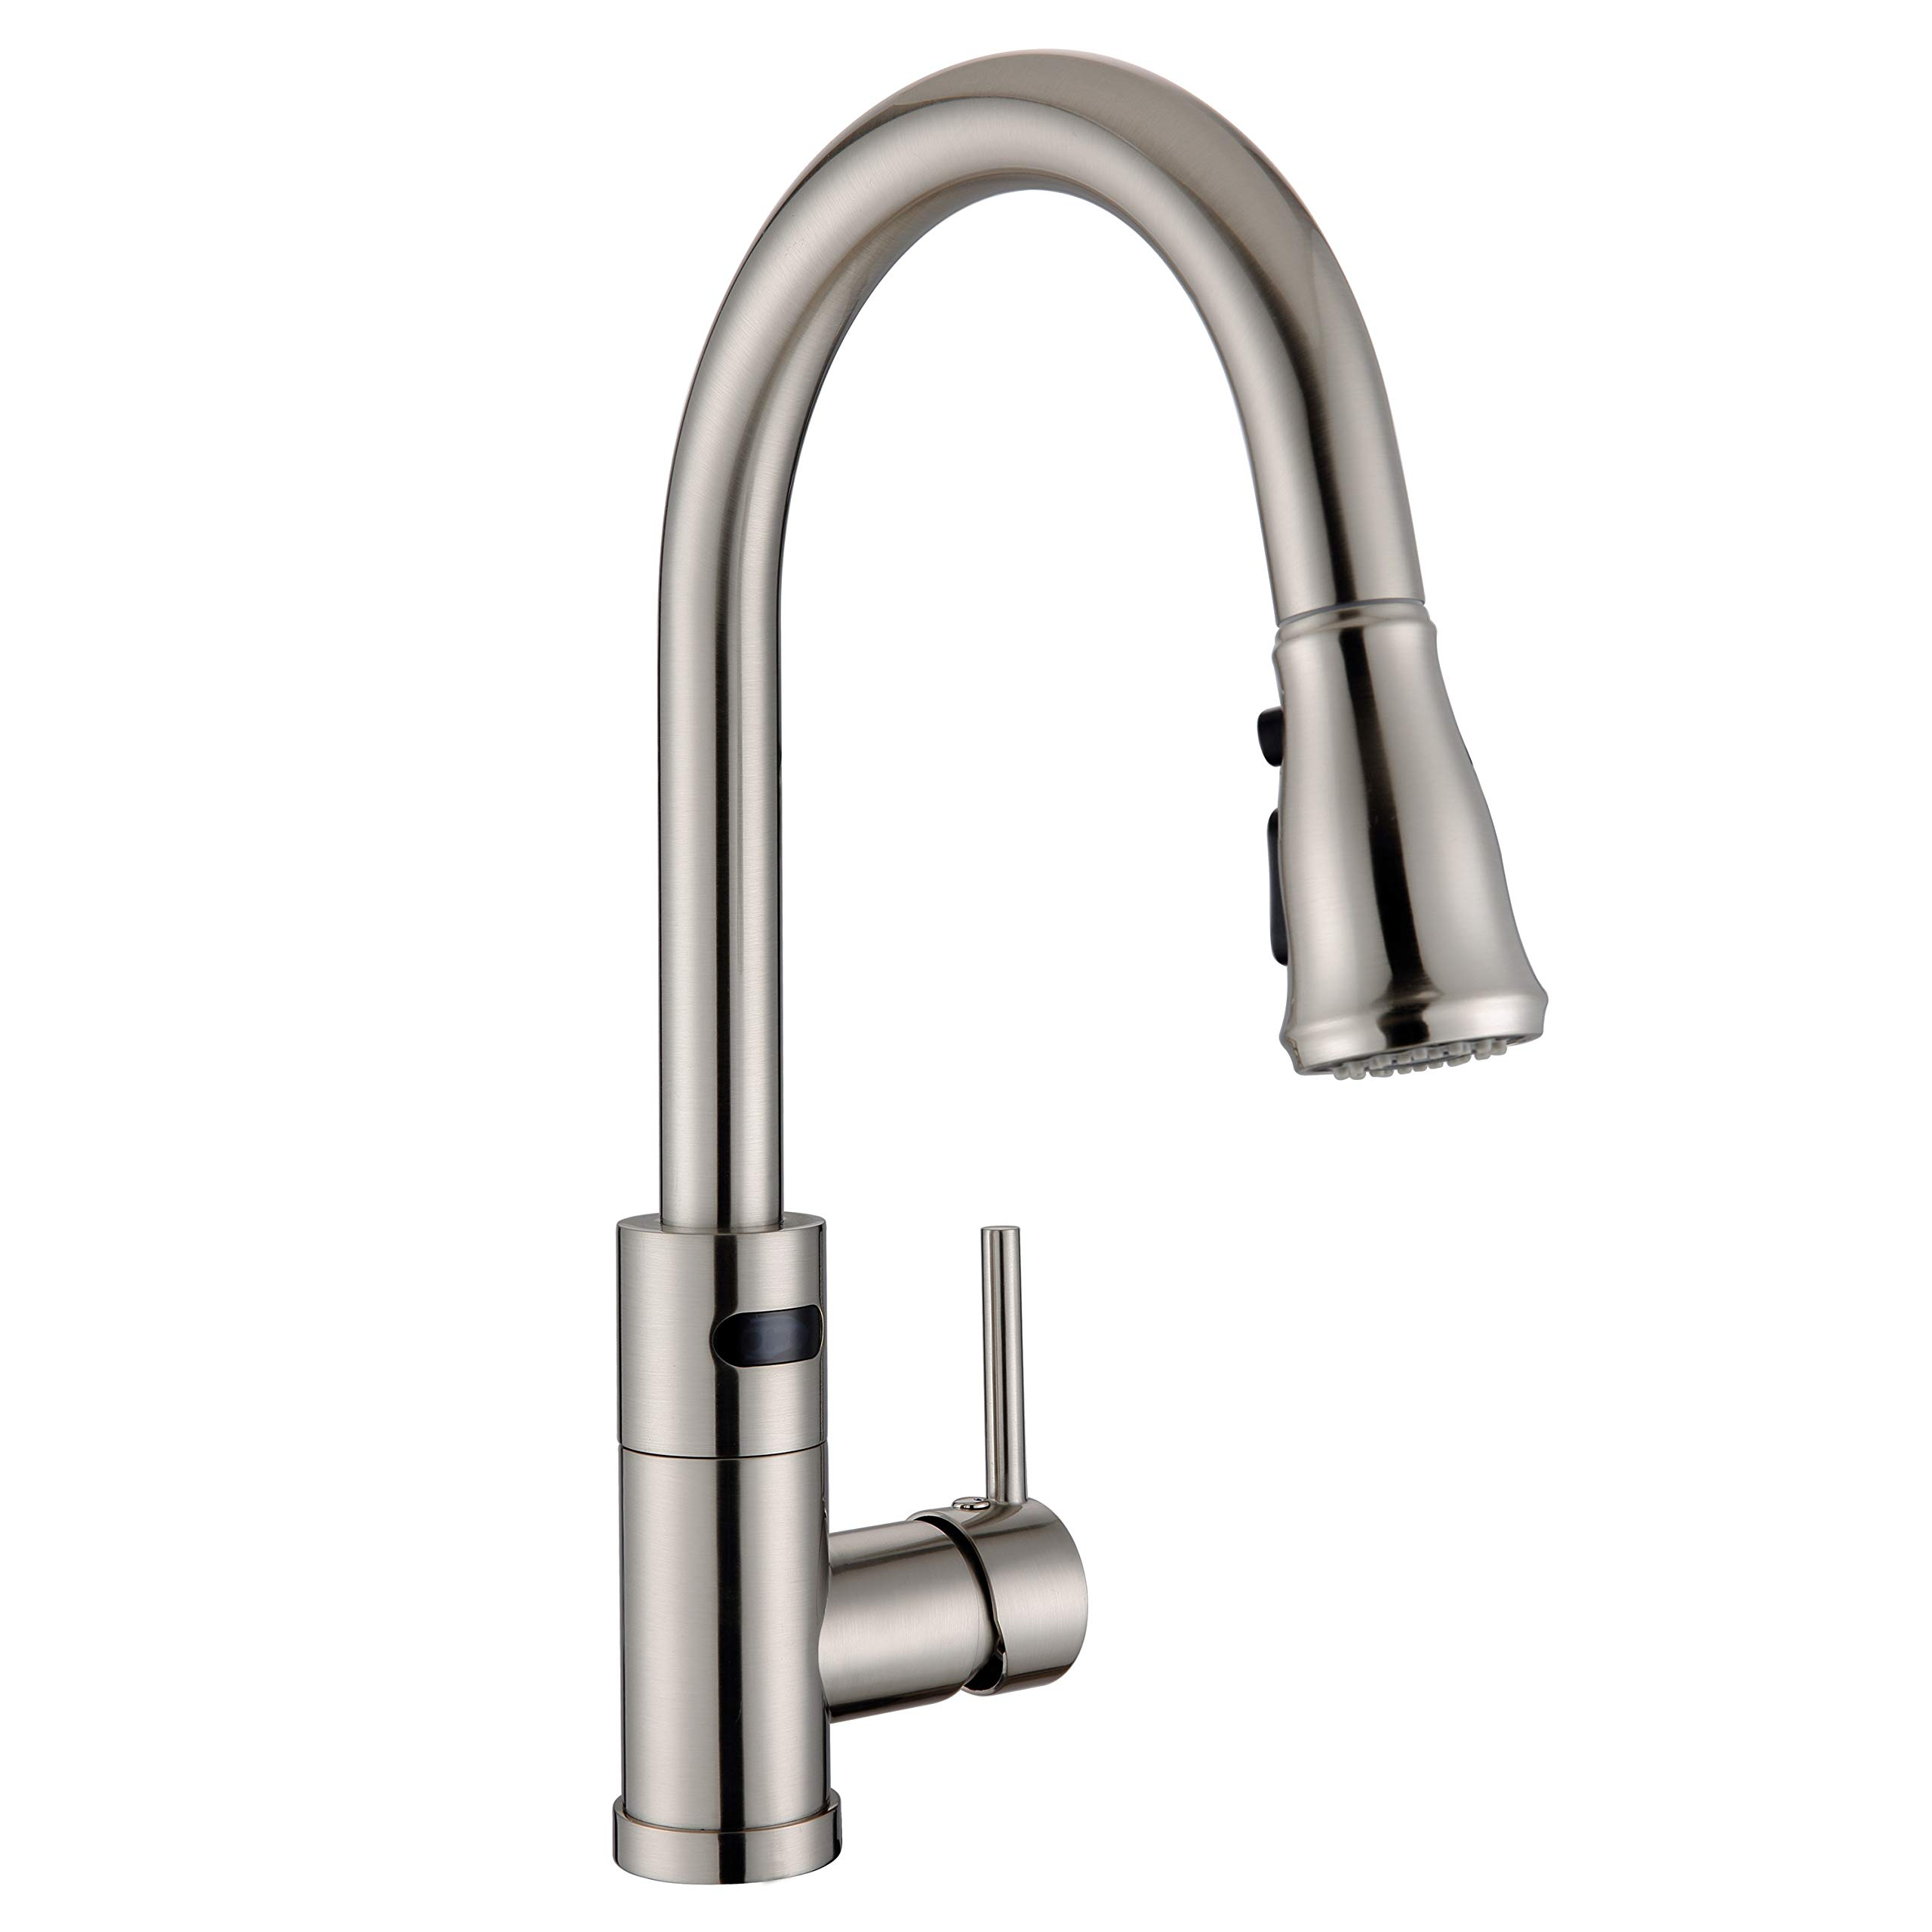 WILLSLAND Touchless Kitchen Faucet with 3-mode Pulldown Sprayer, Brushed Nickel Swivel Motion Sensor Kitchen Sink Faucet Automatic Kitchen Faucet with Sensor Brass Body Easy Installation by WILLSLAND